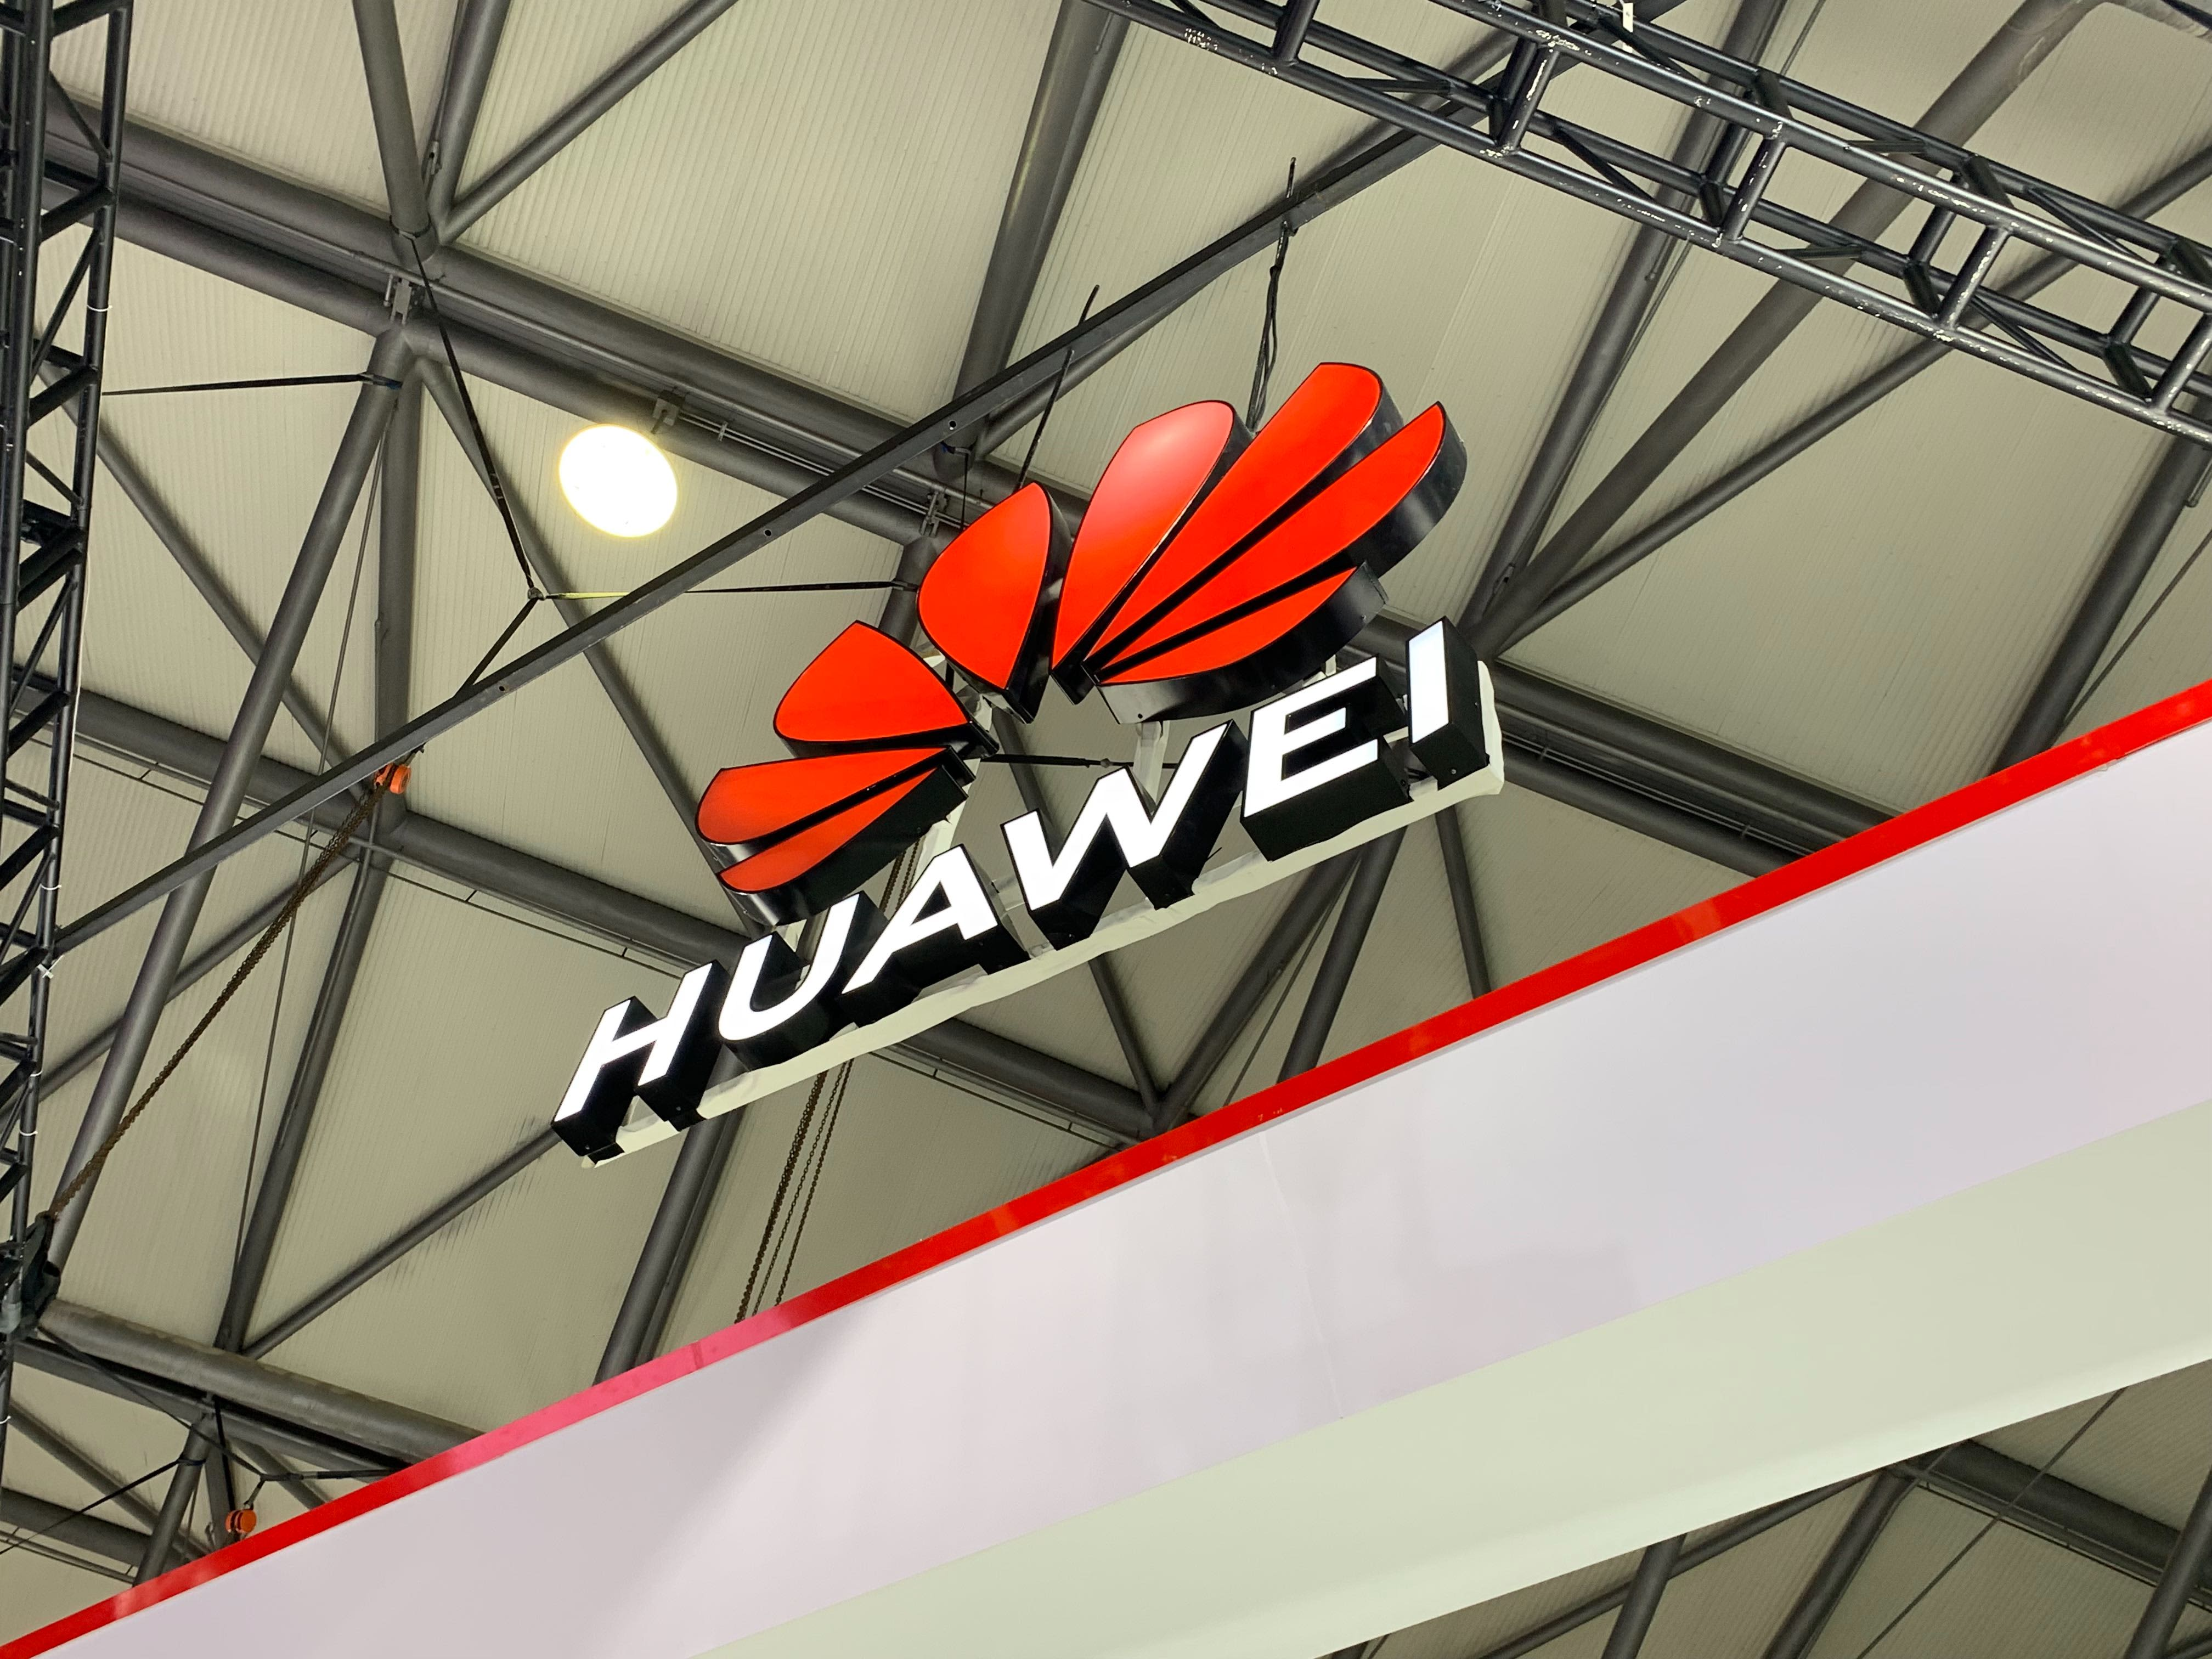 Texas jury teaches Huawei a 'hard lesson,' says US chip start-up cleared of trade secret theft